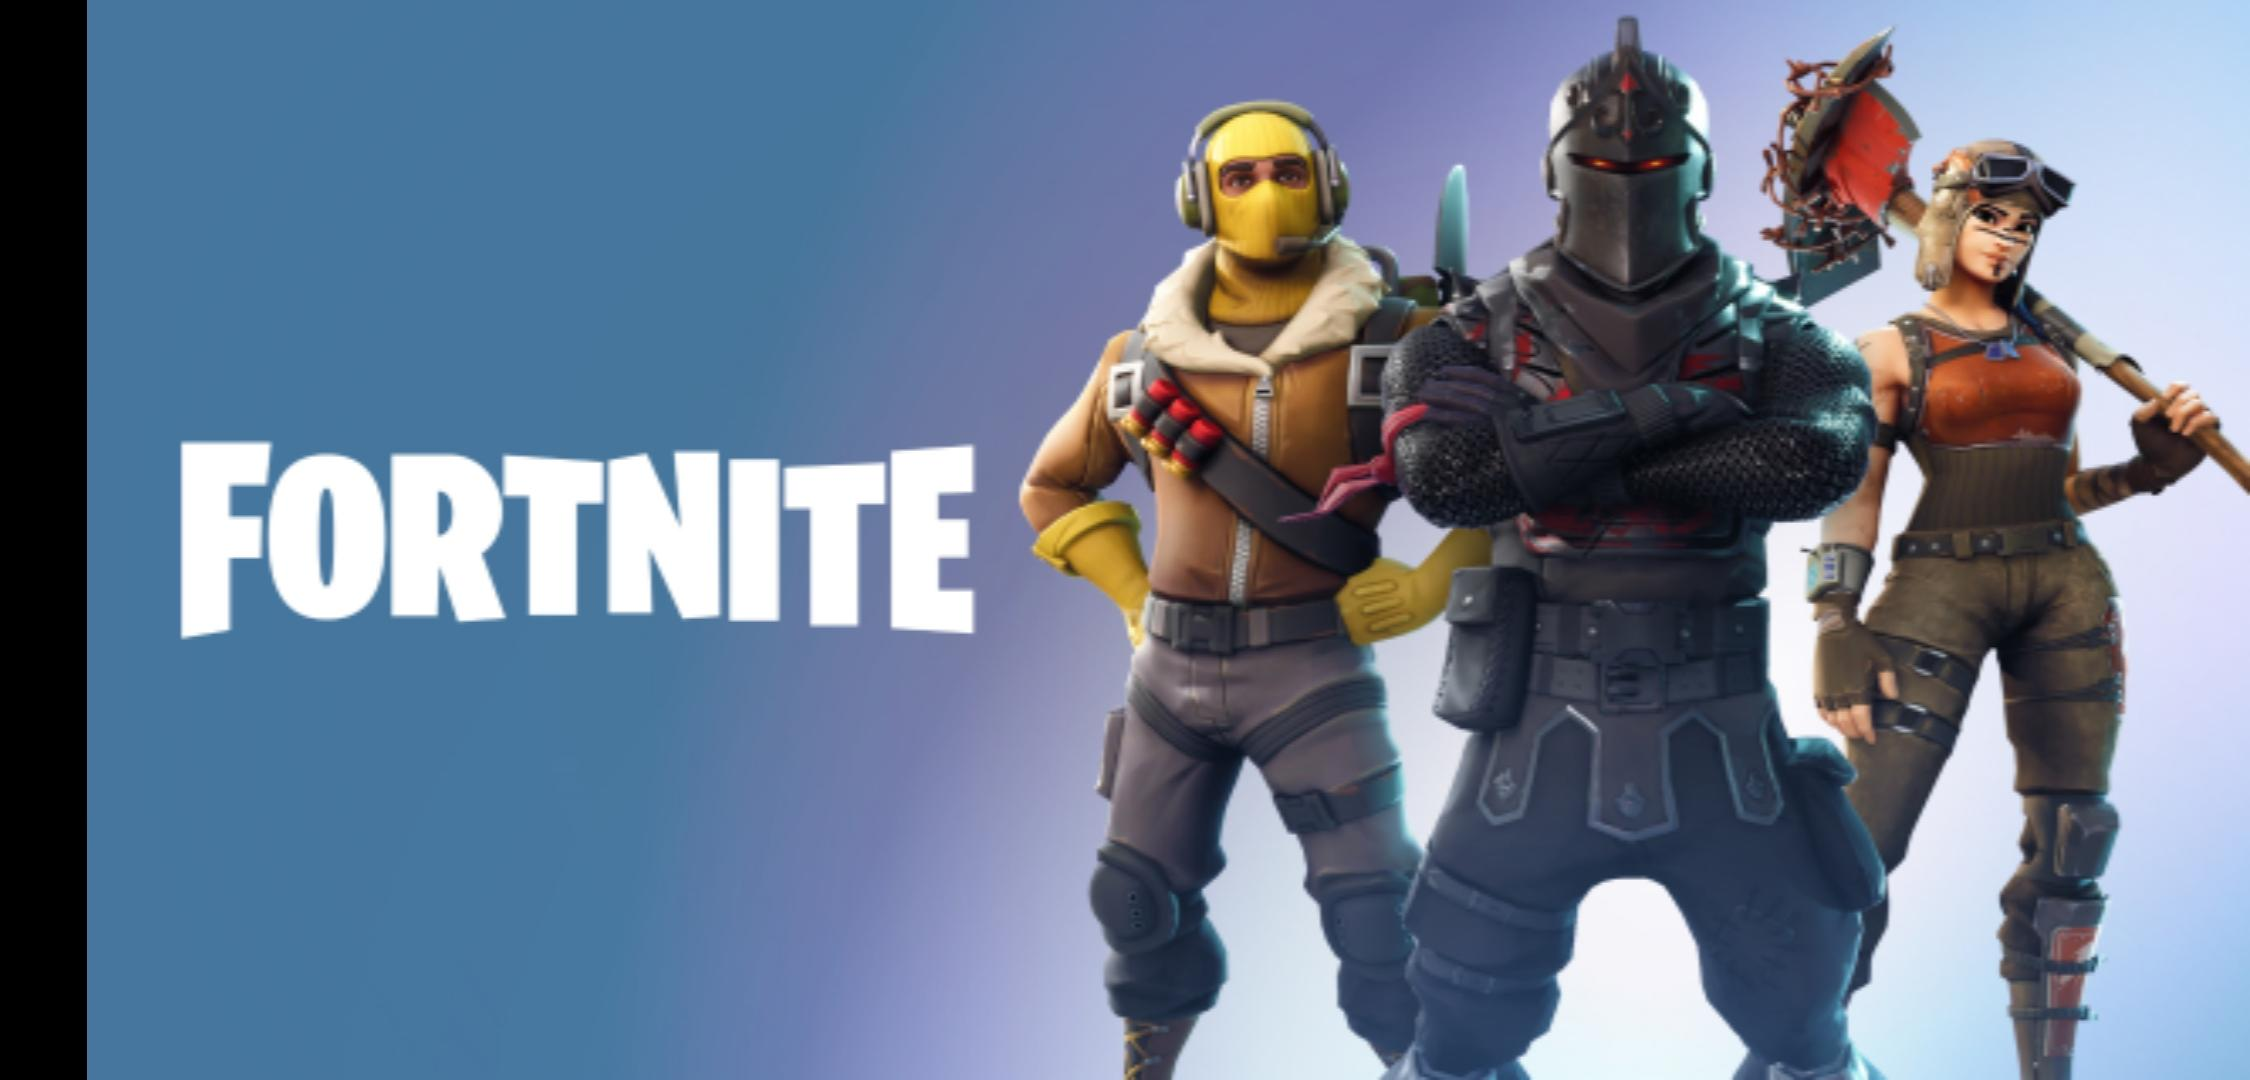 Fortnite - Battle Royale for Android - APK Download